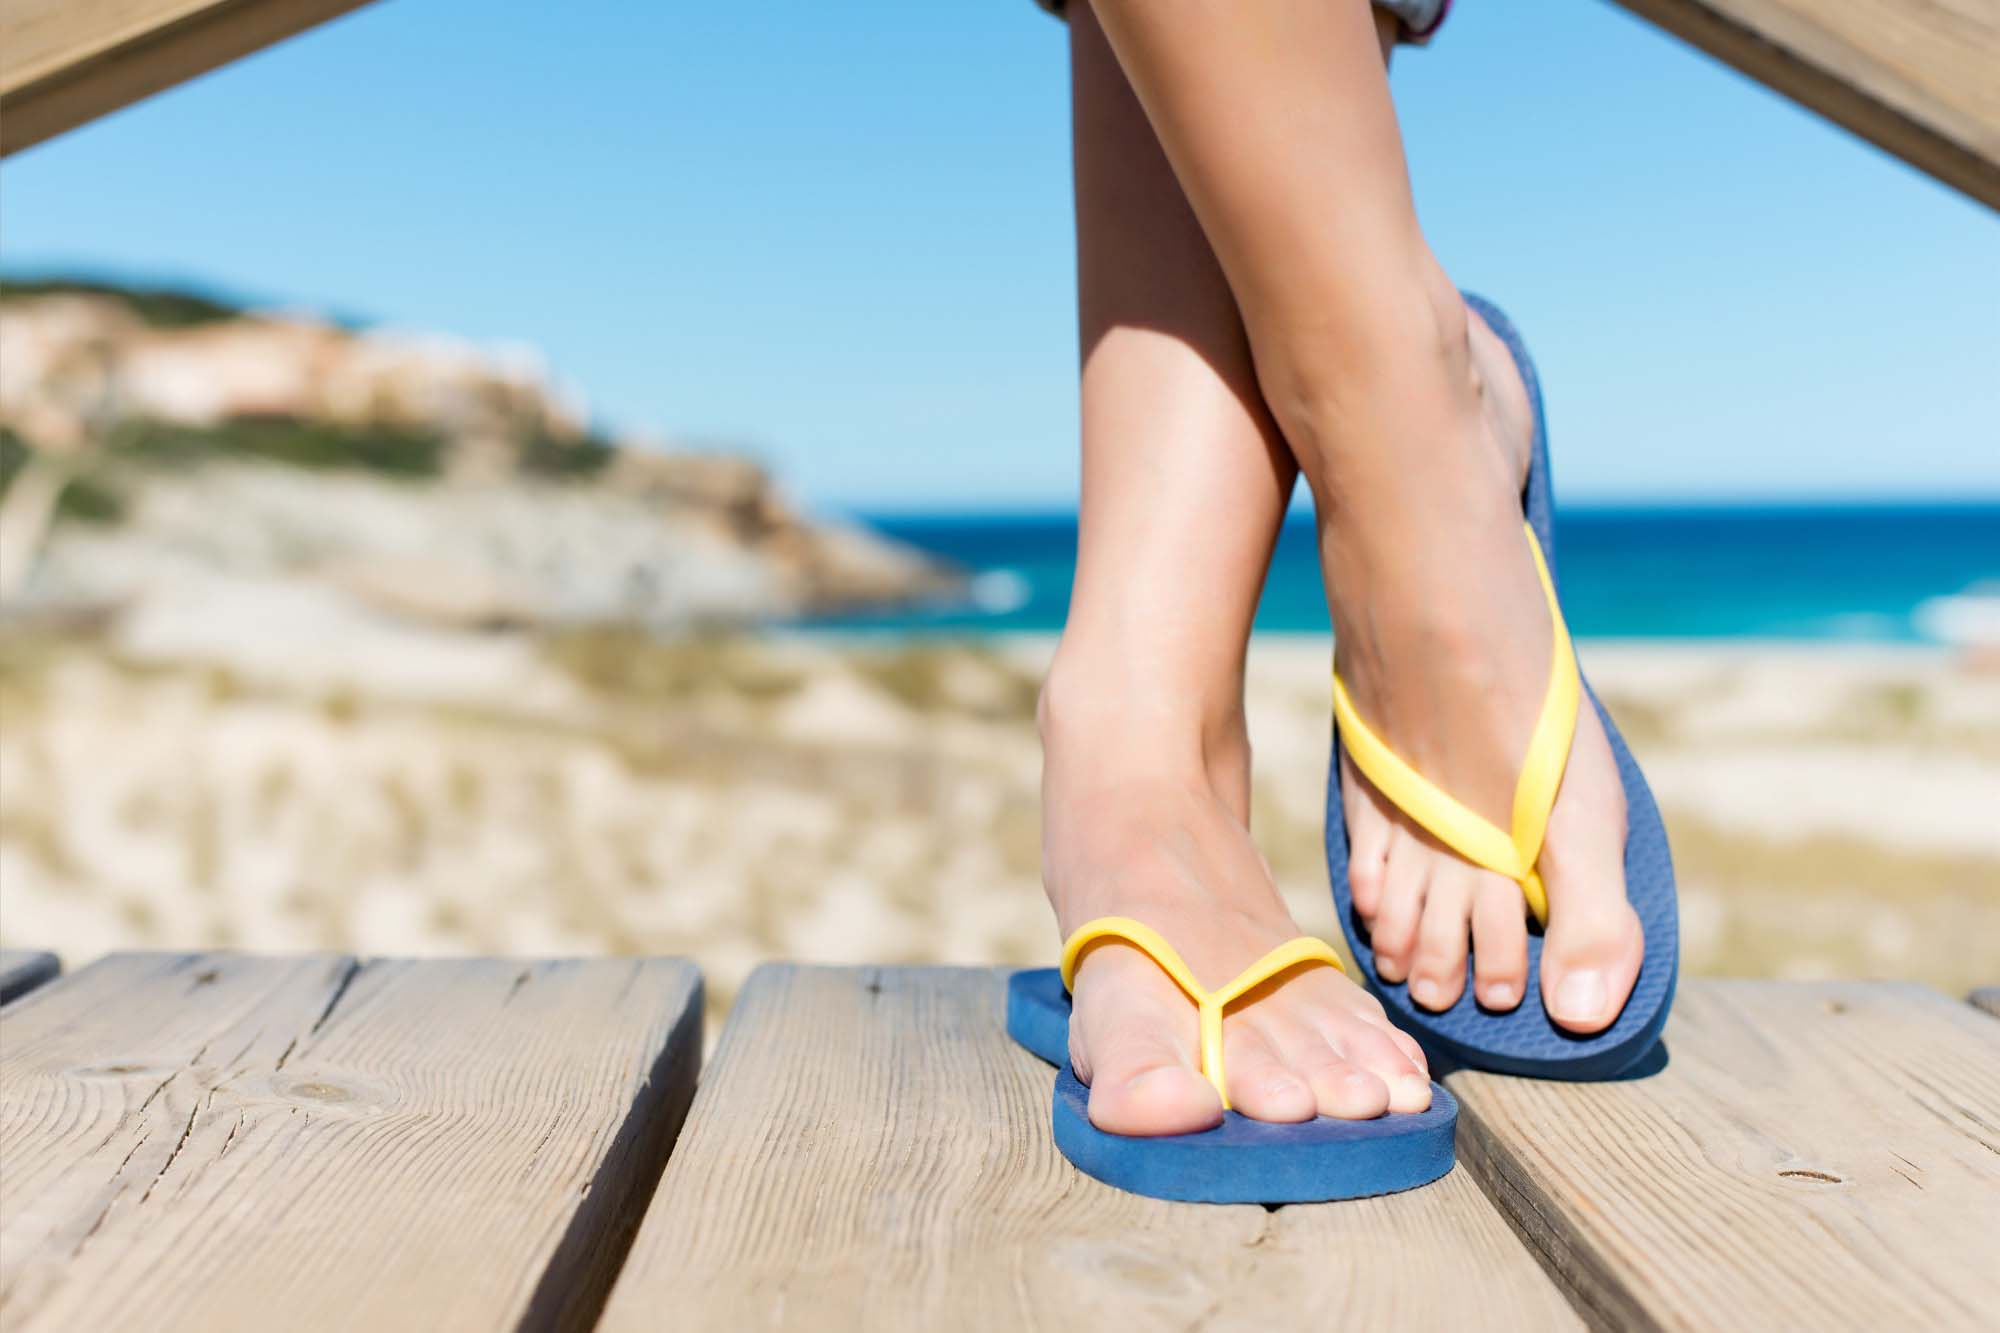 How to Wear Flip Flops: A Simple Style Guide